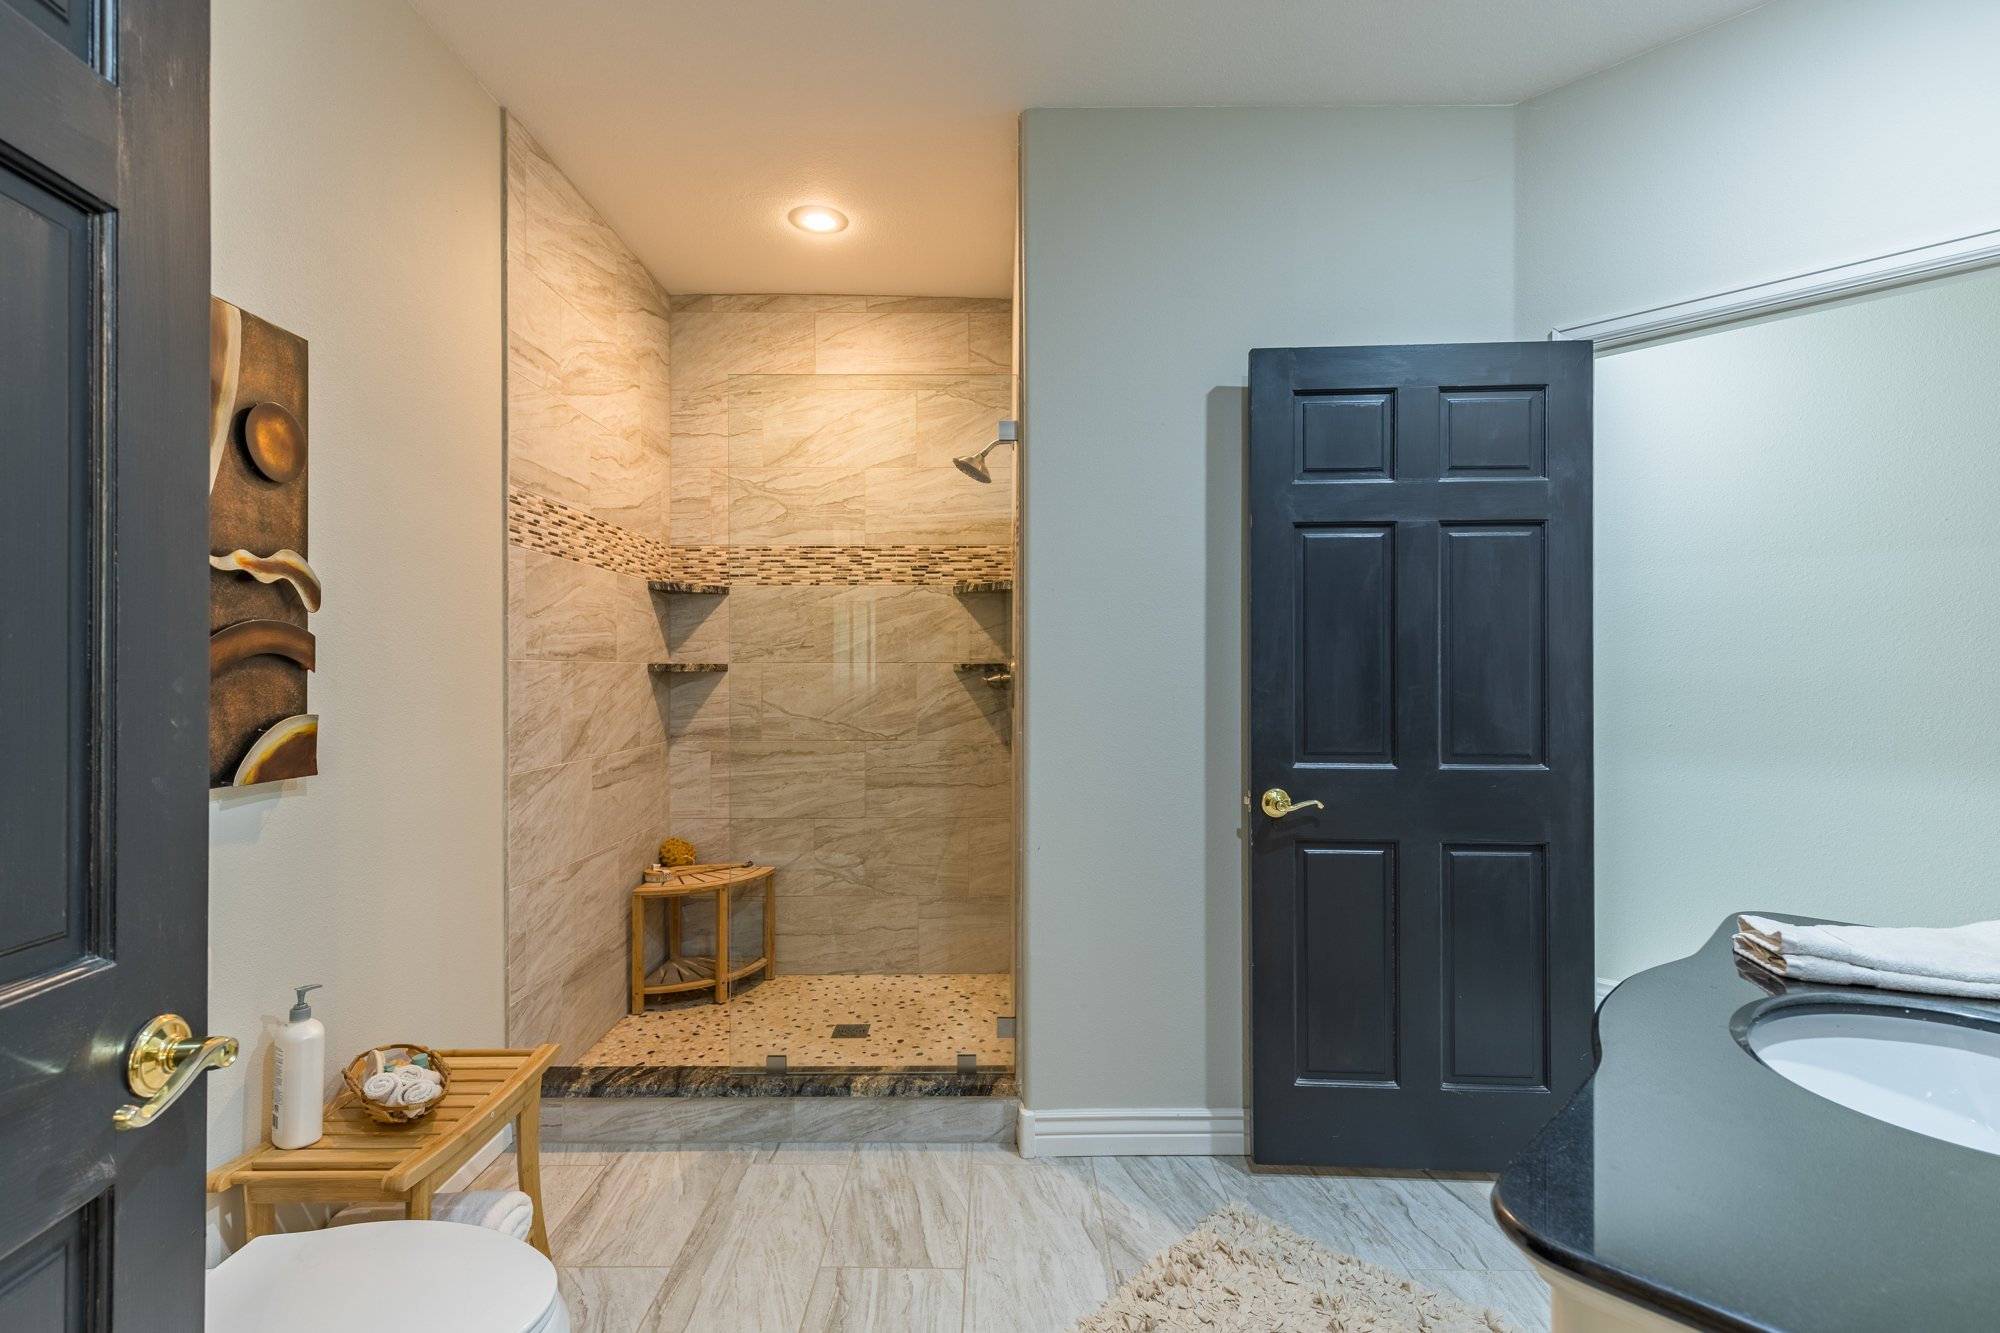 Remodeled Bathroom with Tiled Shower - 16955 Wildwood Dr. Montrose, CO 81403 - Atha Team Luxury Real Estate